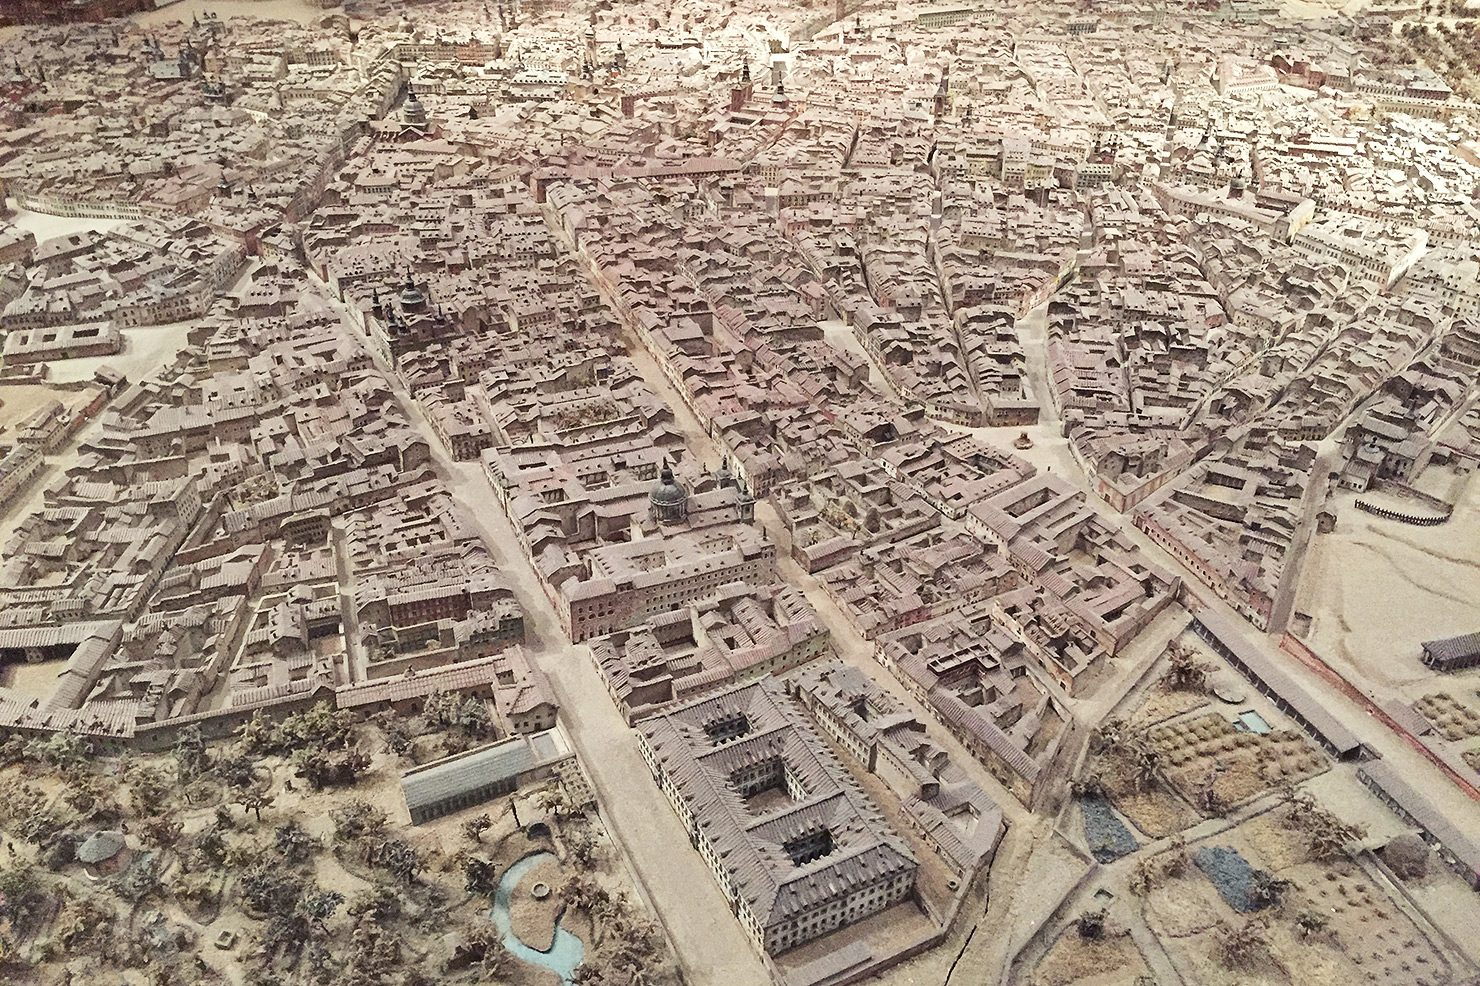 A model of central Madrid, built in 1830 by León Gil de Palacio.